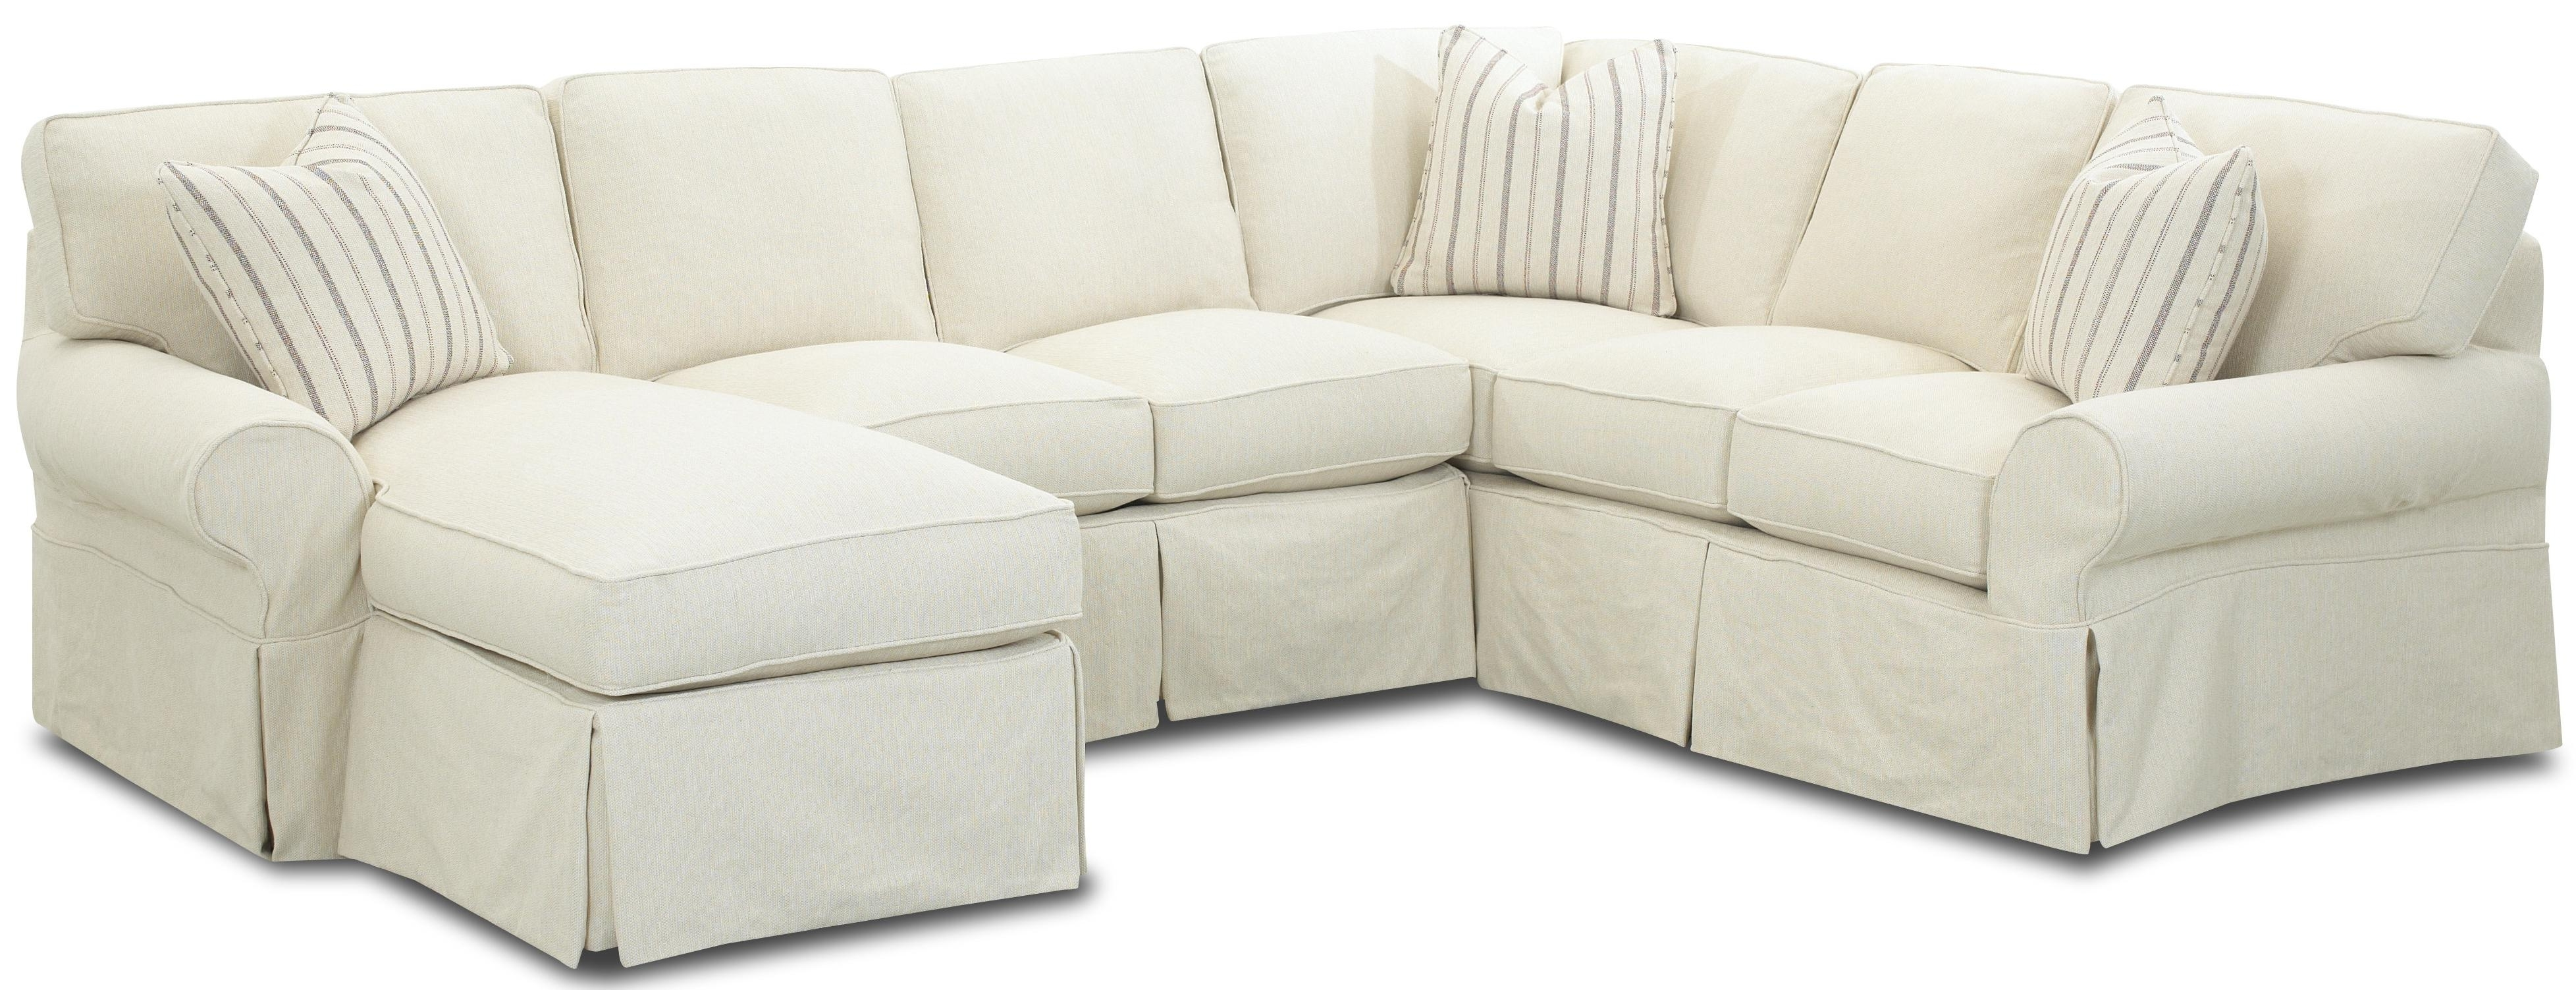 Slipcover Sectional Sofas With Chaise Pertaining To Recent Awesome Slipcover Sectional Sofa With Chaise 91 For Modern Sofa (View 10 of 15)